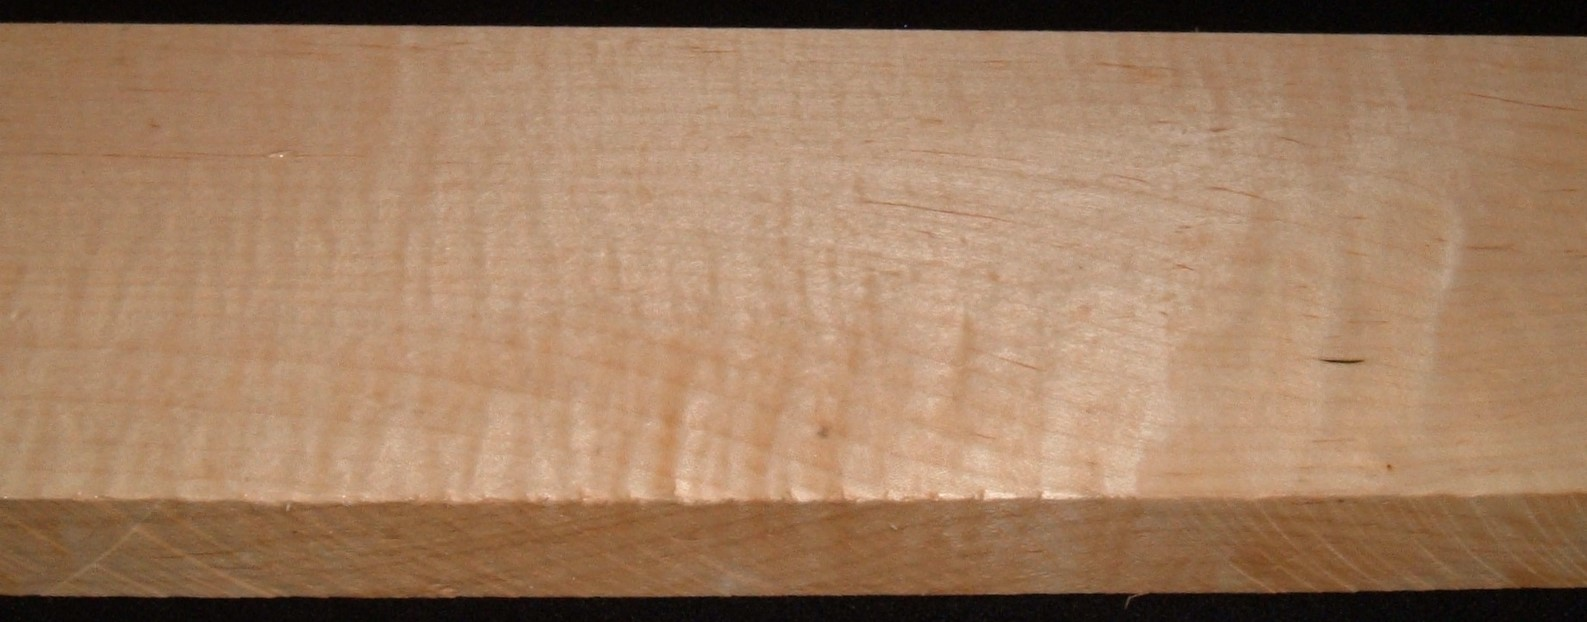 QS2104-43JK, 1-1/4x4x47, Quartersawn Curly Maple